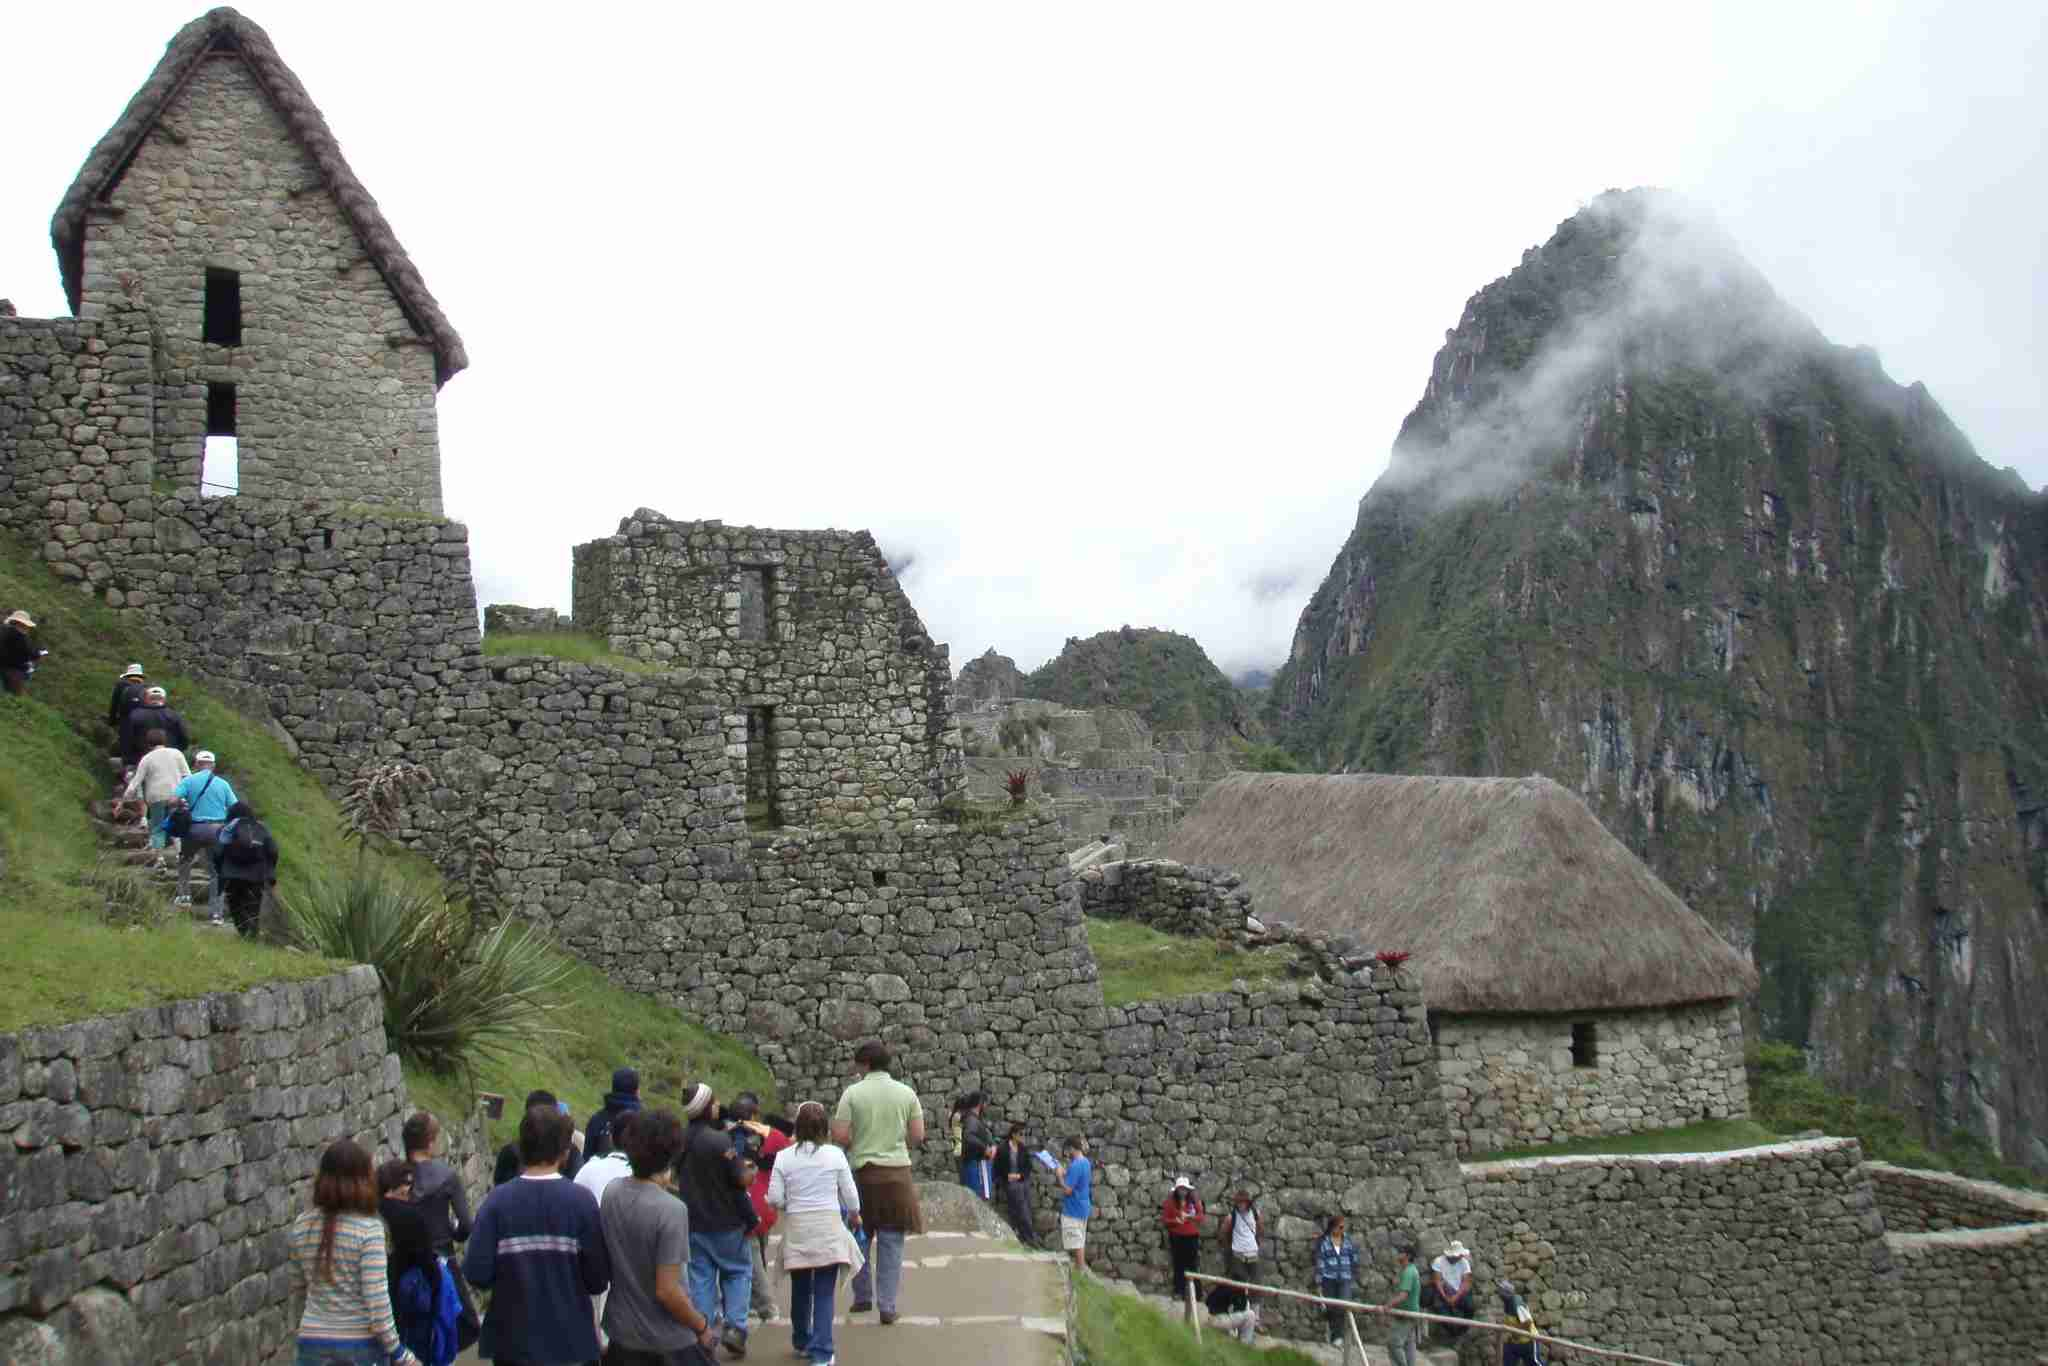 Crowds were moderate at Machu Picchu during my last visit in 2008. Since then, popularity has exploded and many more rules and restrictions have been put in place. (Photo by Brian Biros / TPG)